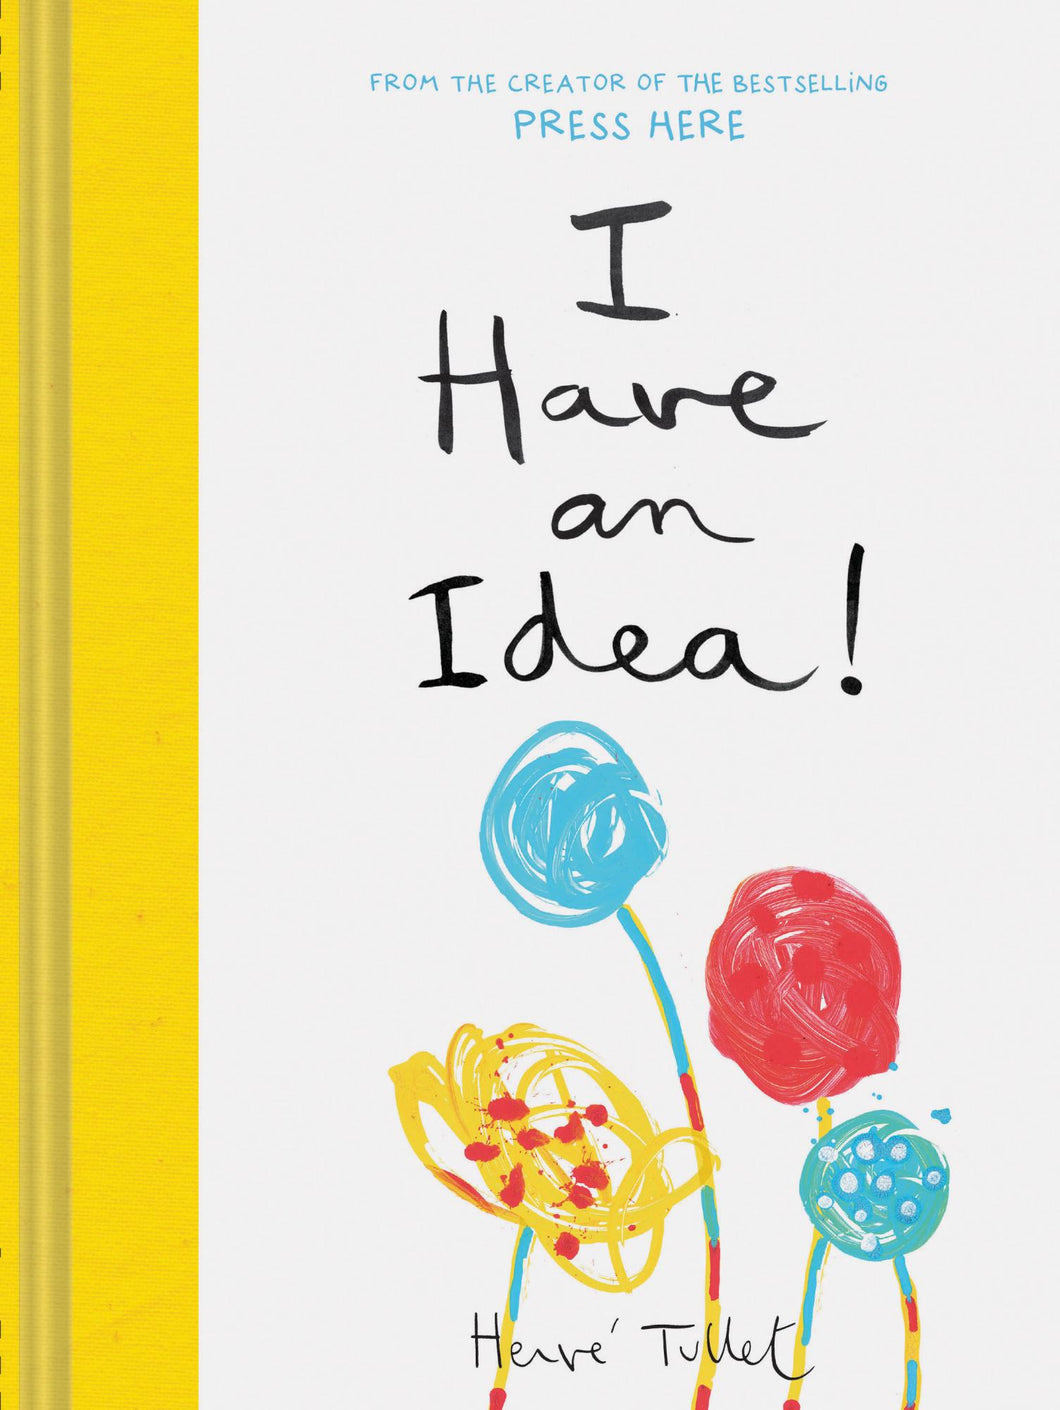 I Have An Idea (Book by Herve Tullet)